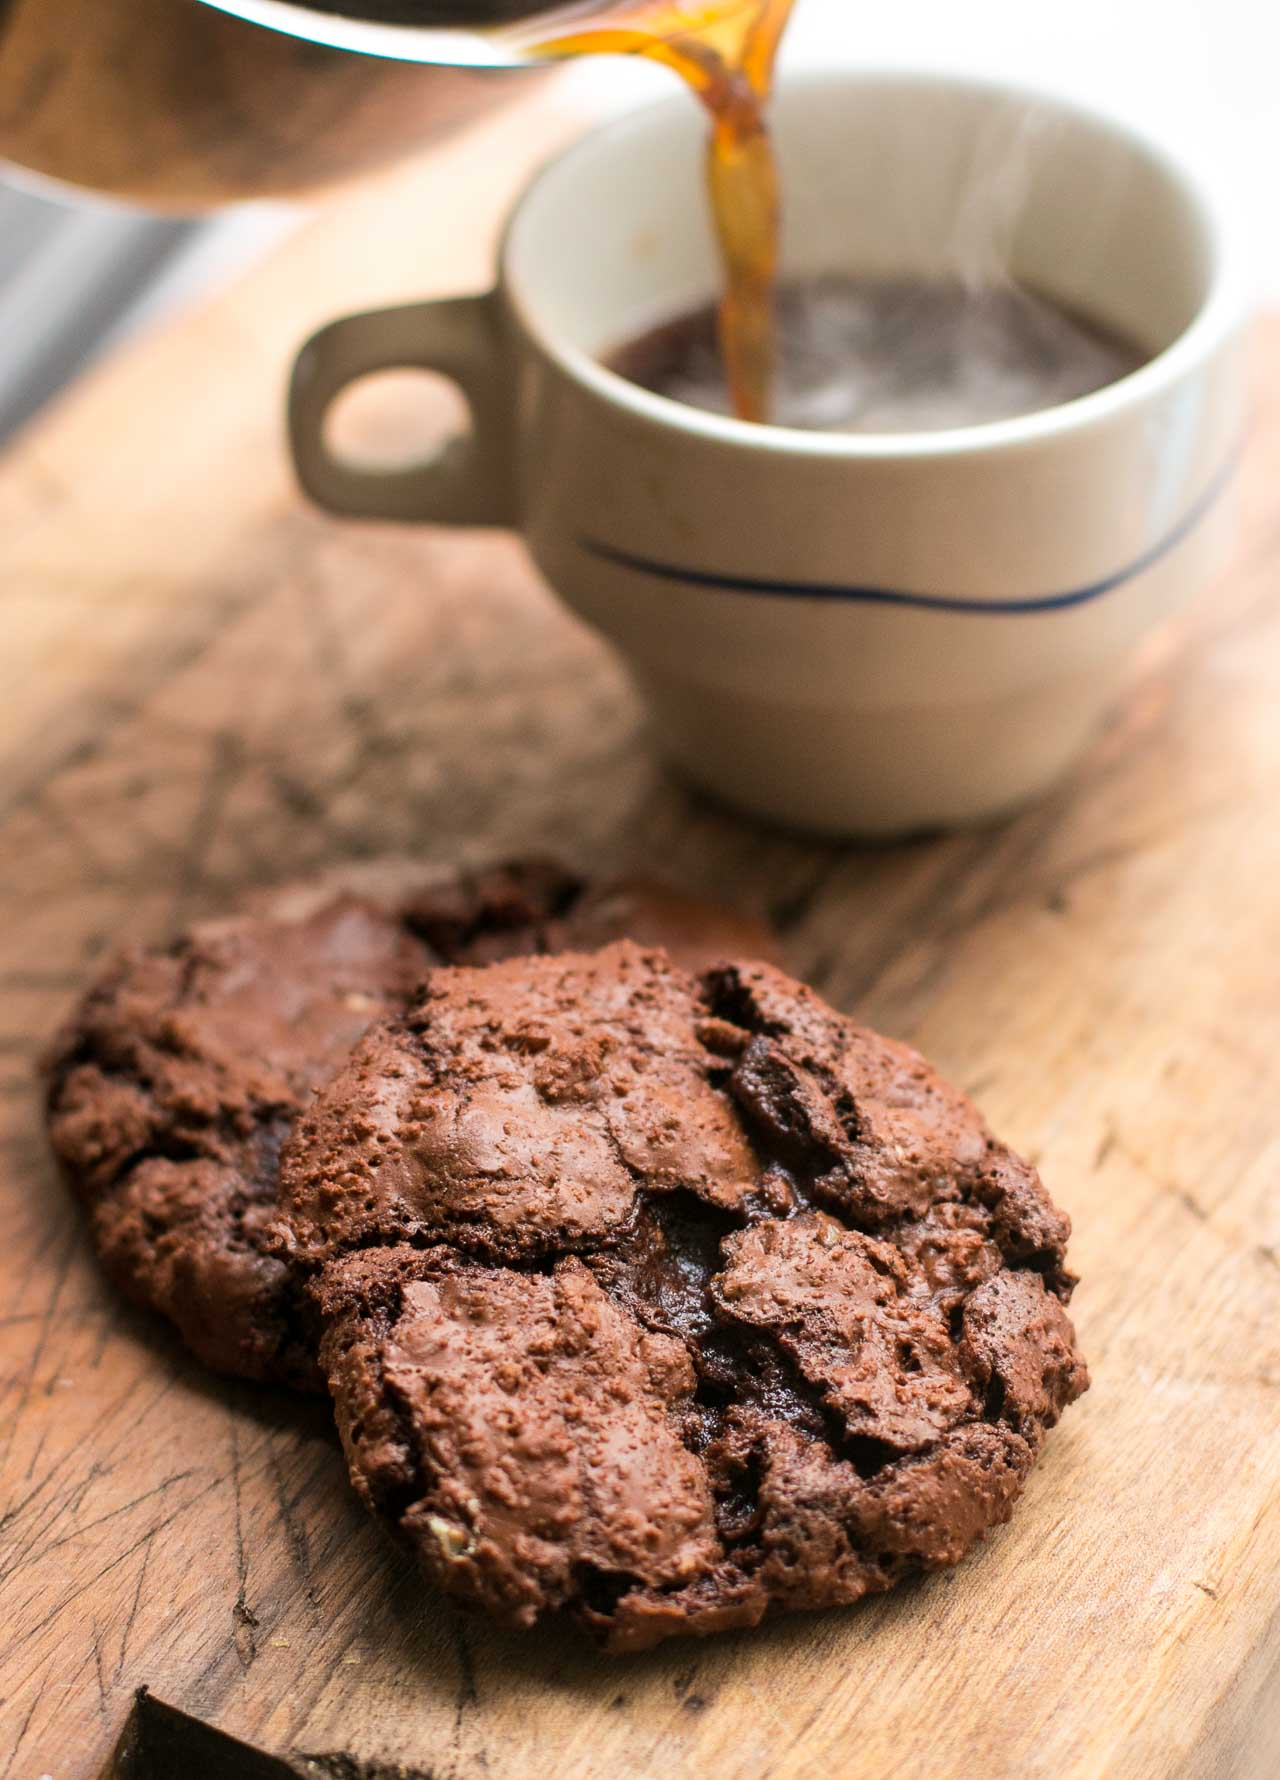 Amazingly decadent double chocolate chip cookies - the best!